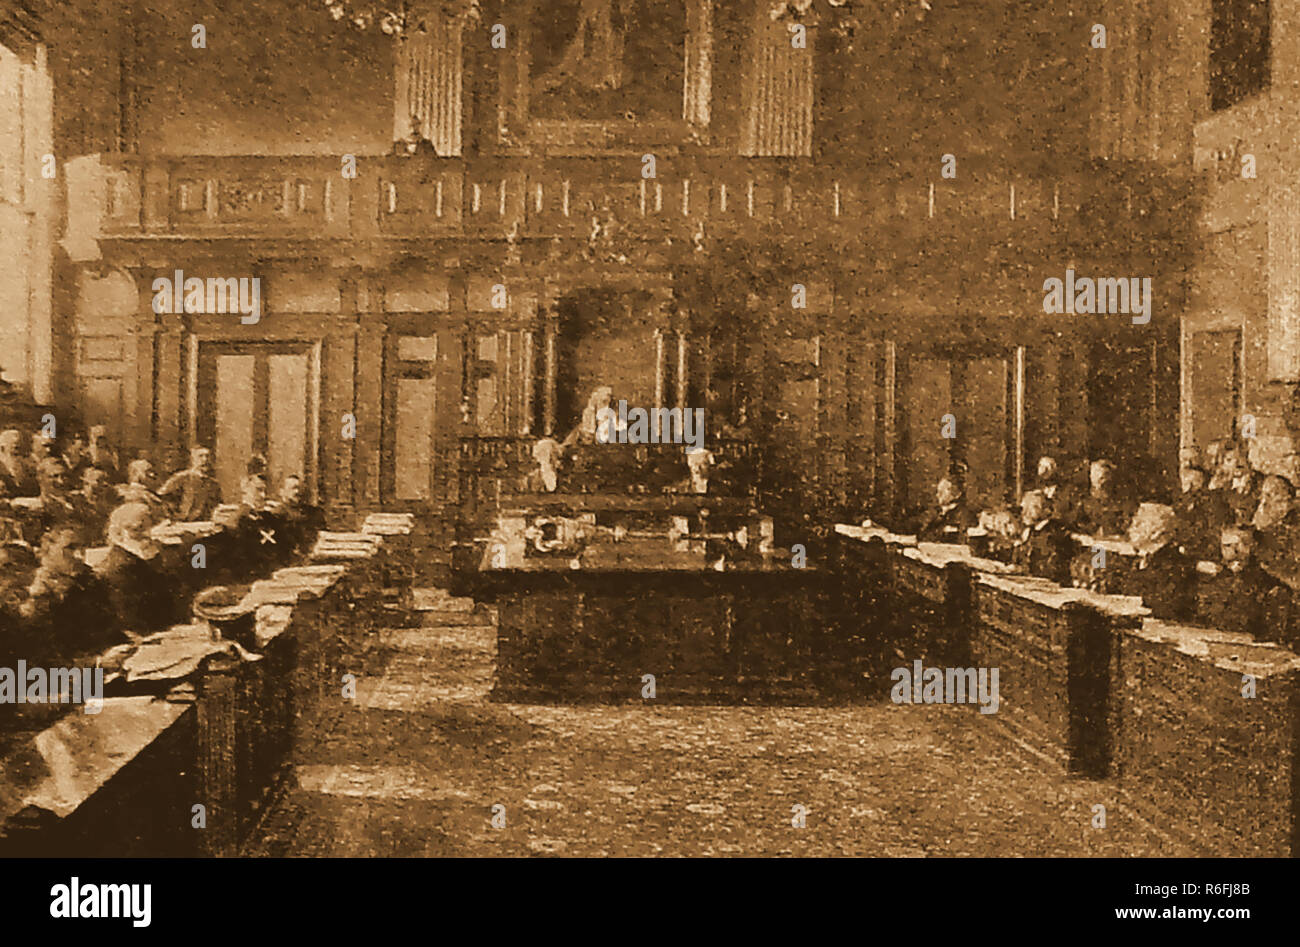 An early photograph, of a sitting of the Cape Parliament  aka Cape Colony or the Parliament of the Cape of Good Hope(South Africa) in the late 1800's. CECIL RHODES is in the chamber (marked with a white cross on the left) - Stock Image